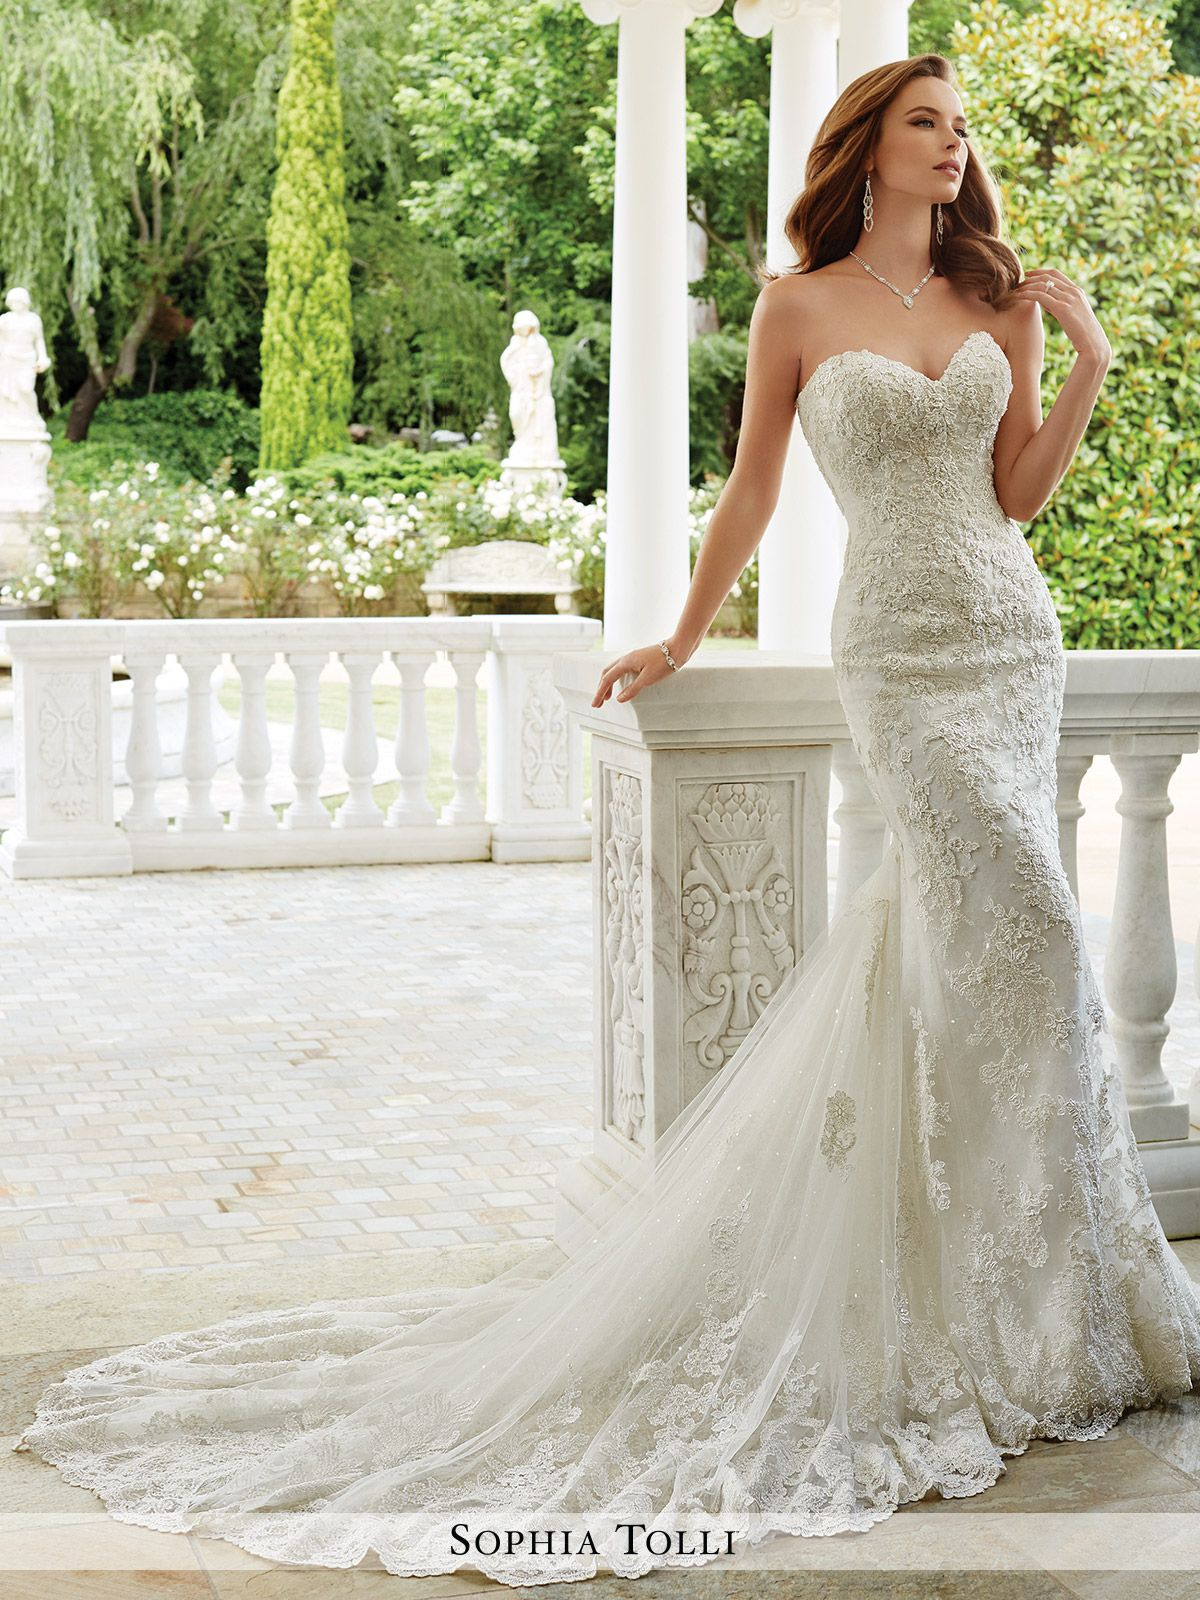 Y21674 Napoli Sophia Tolli Wedding Dress | Beaded lace, Gowns and ...